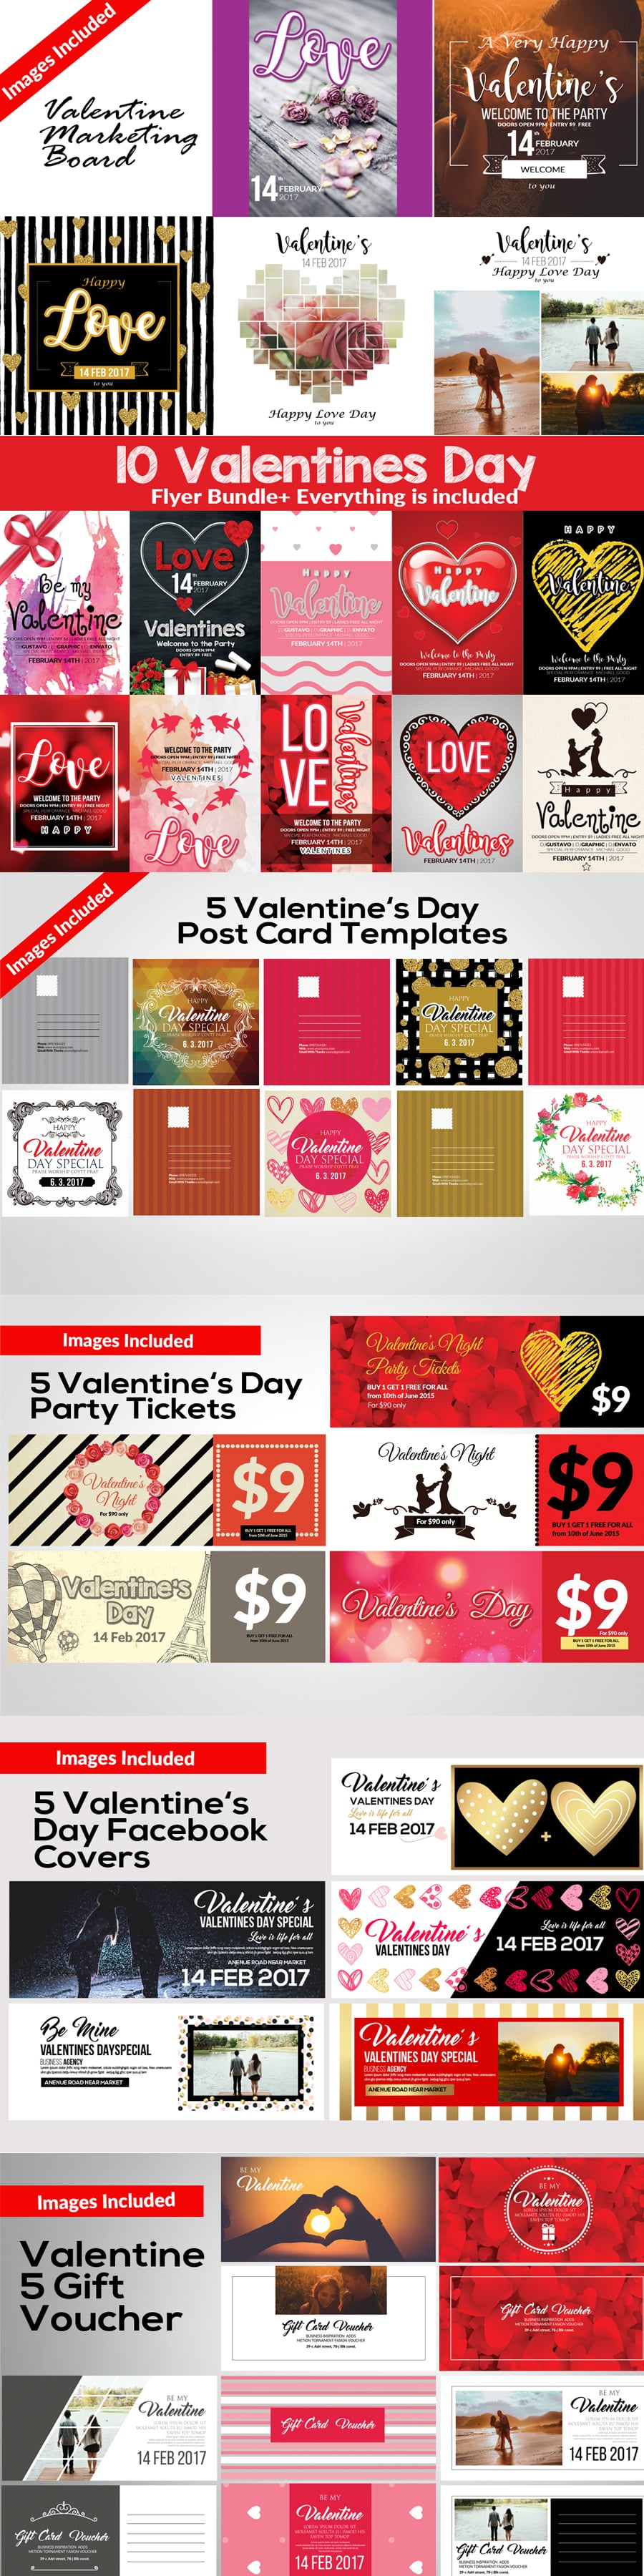 Valentine's Day Images Bundle: 35 Amazing Templates - Full Preview